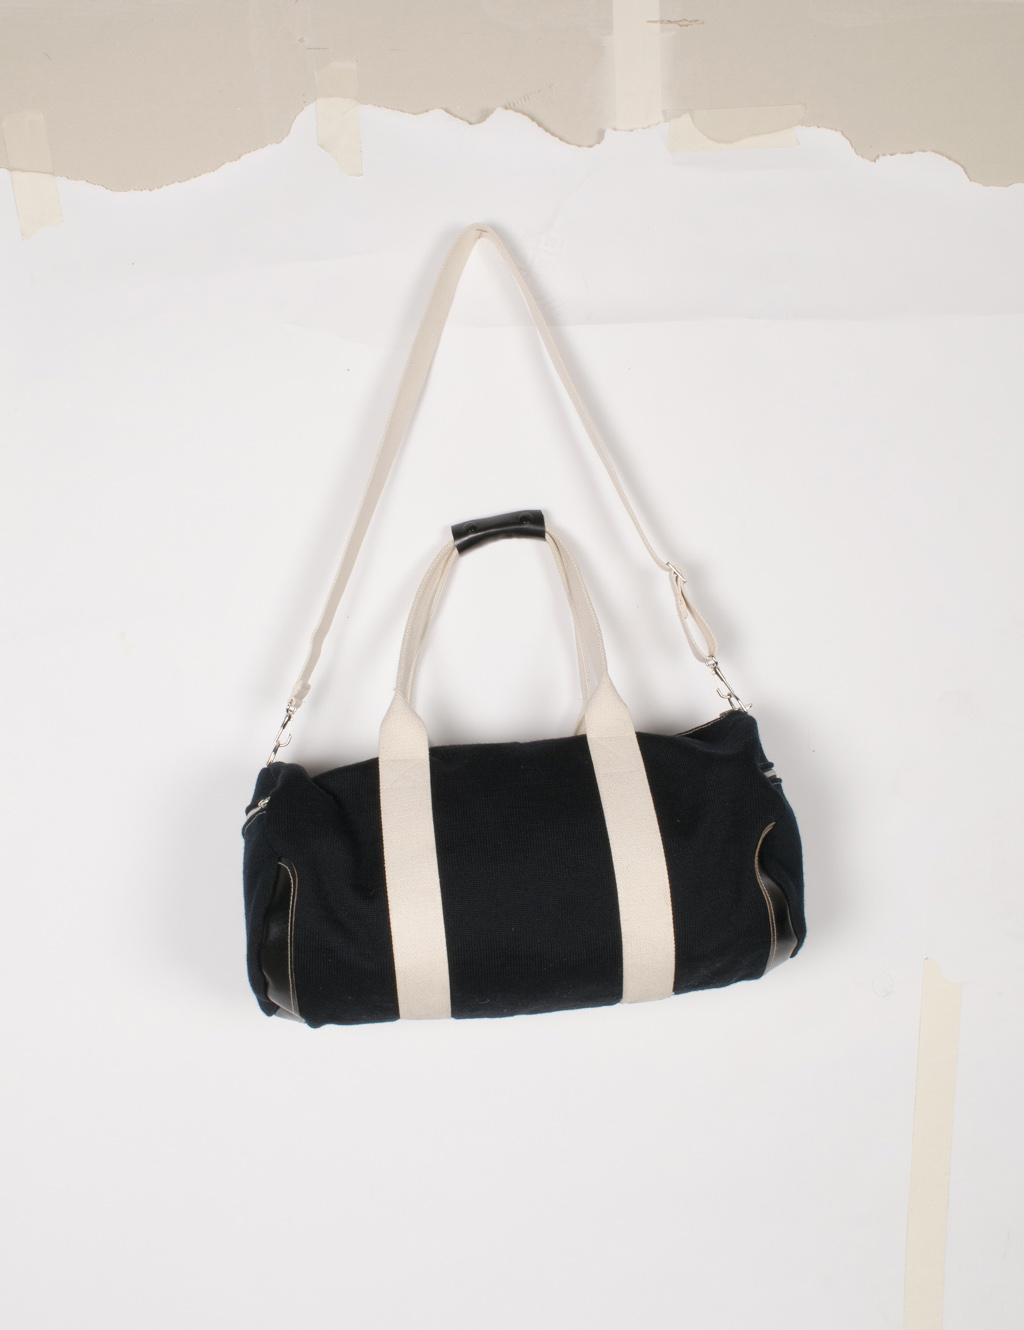 Knit Duffel Bag - Black - $320